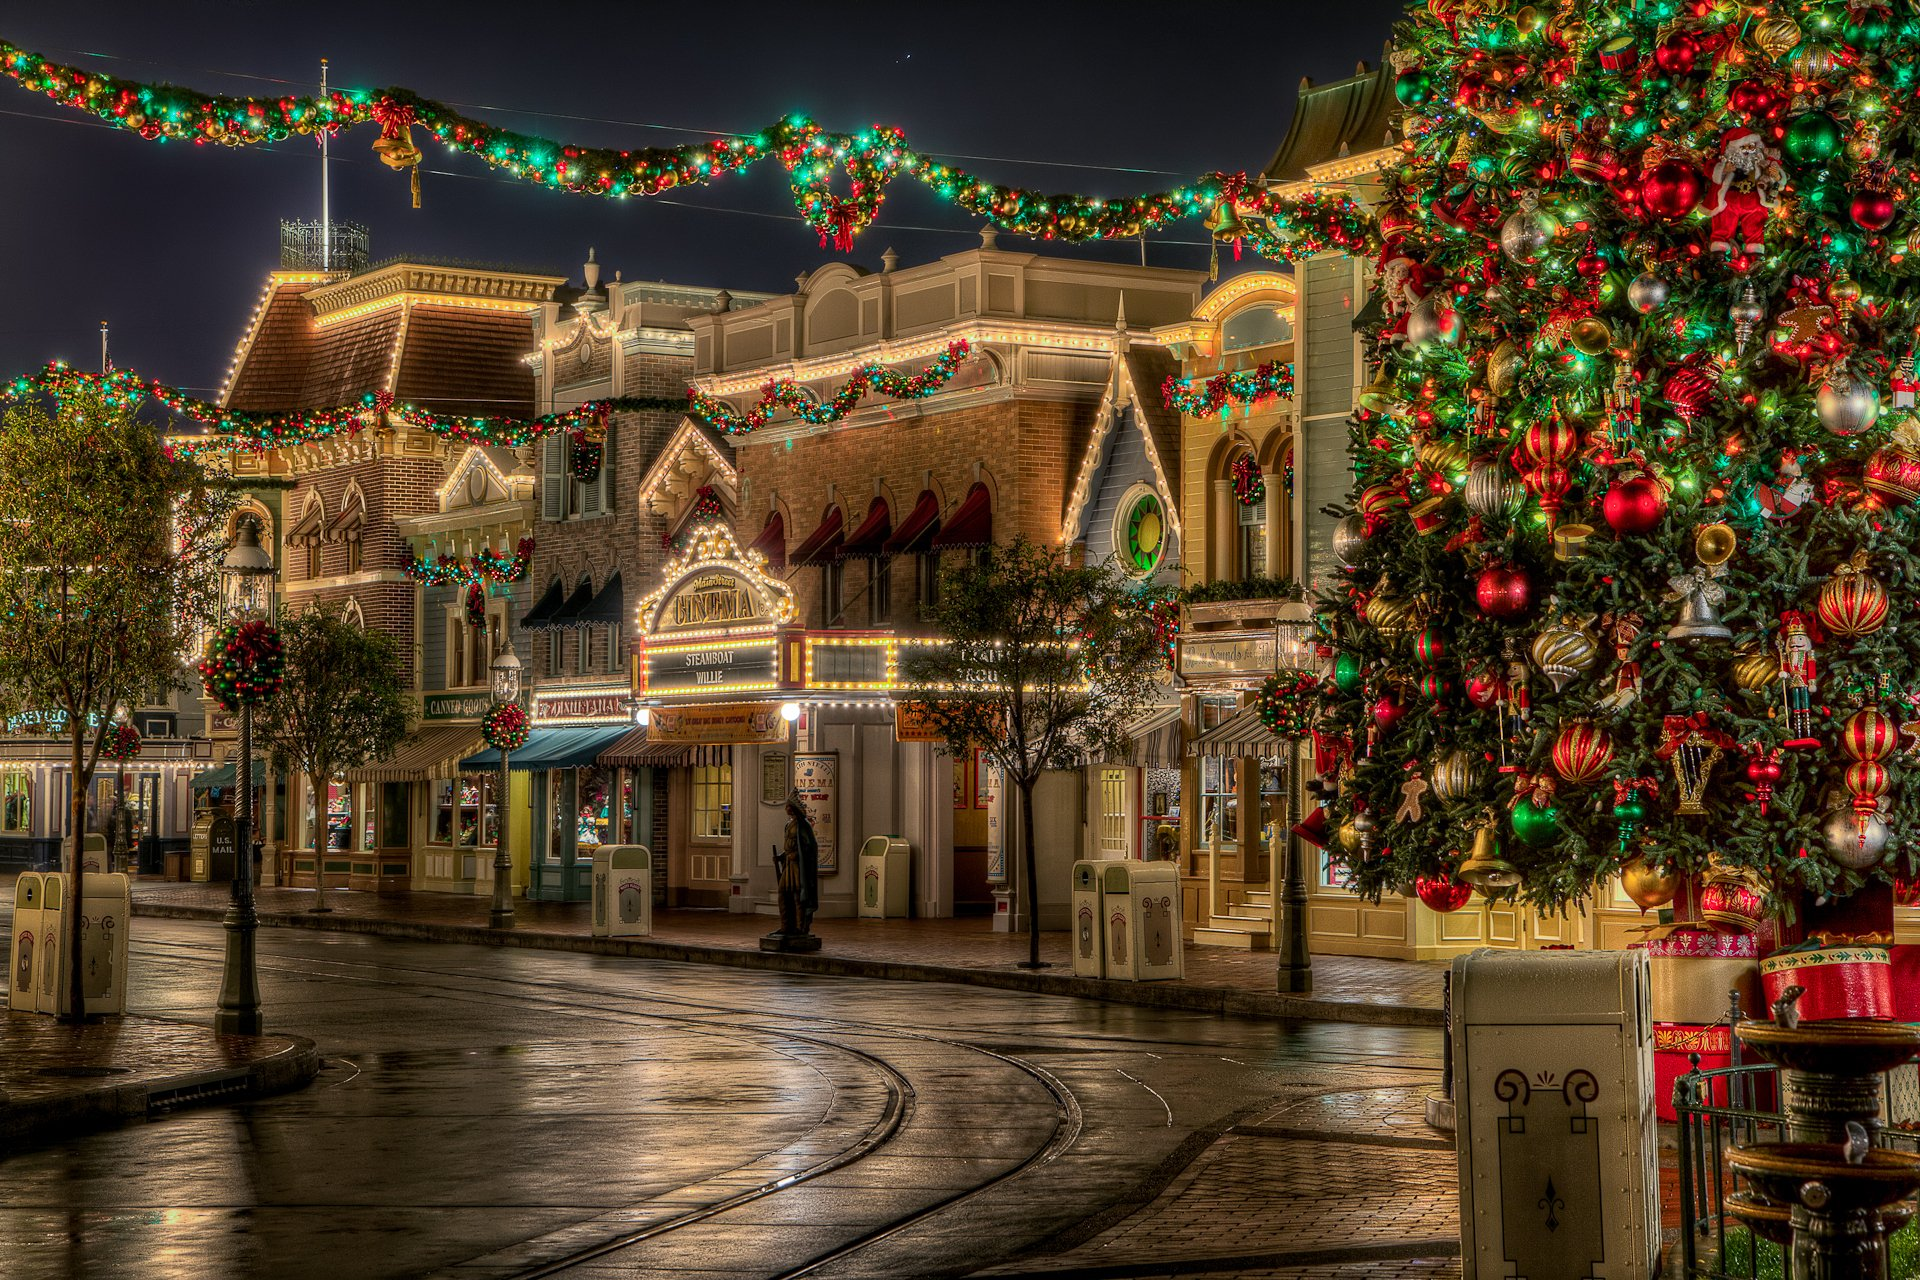 beautiful decorated area on christmas day